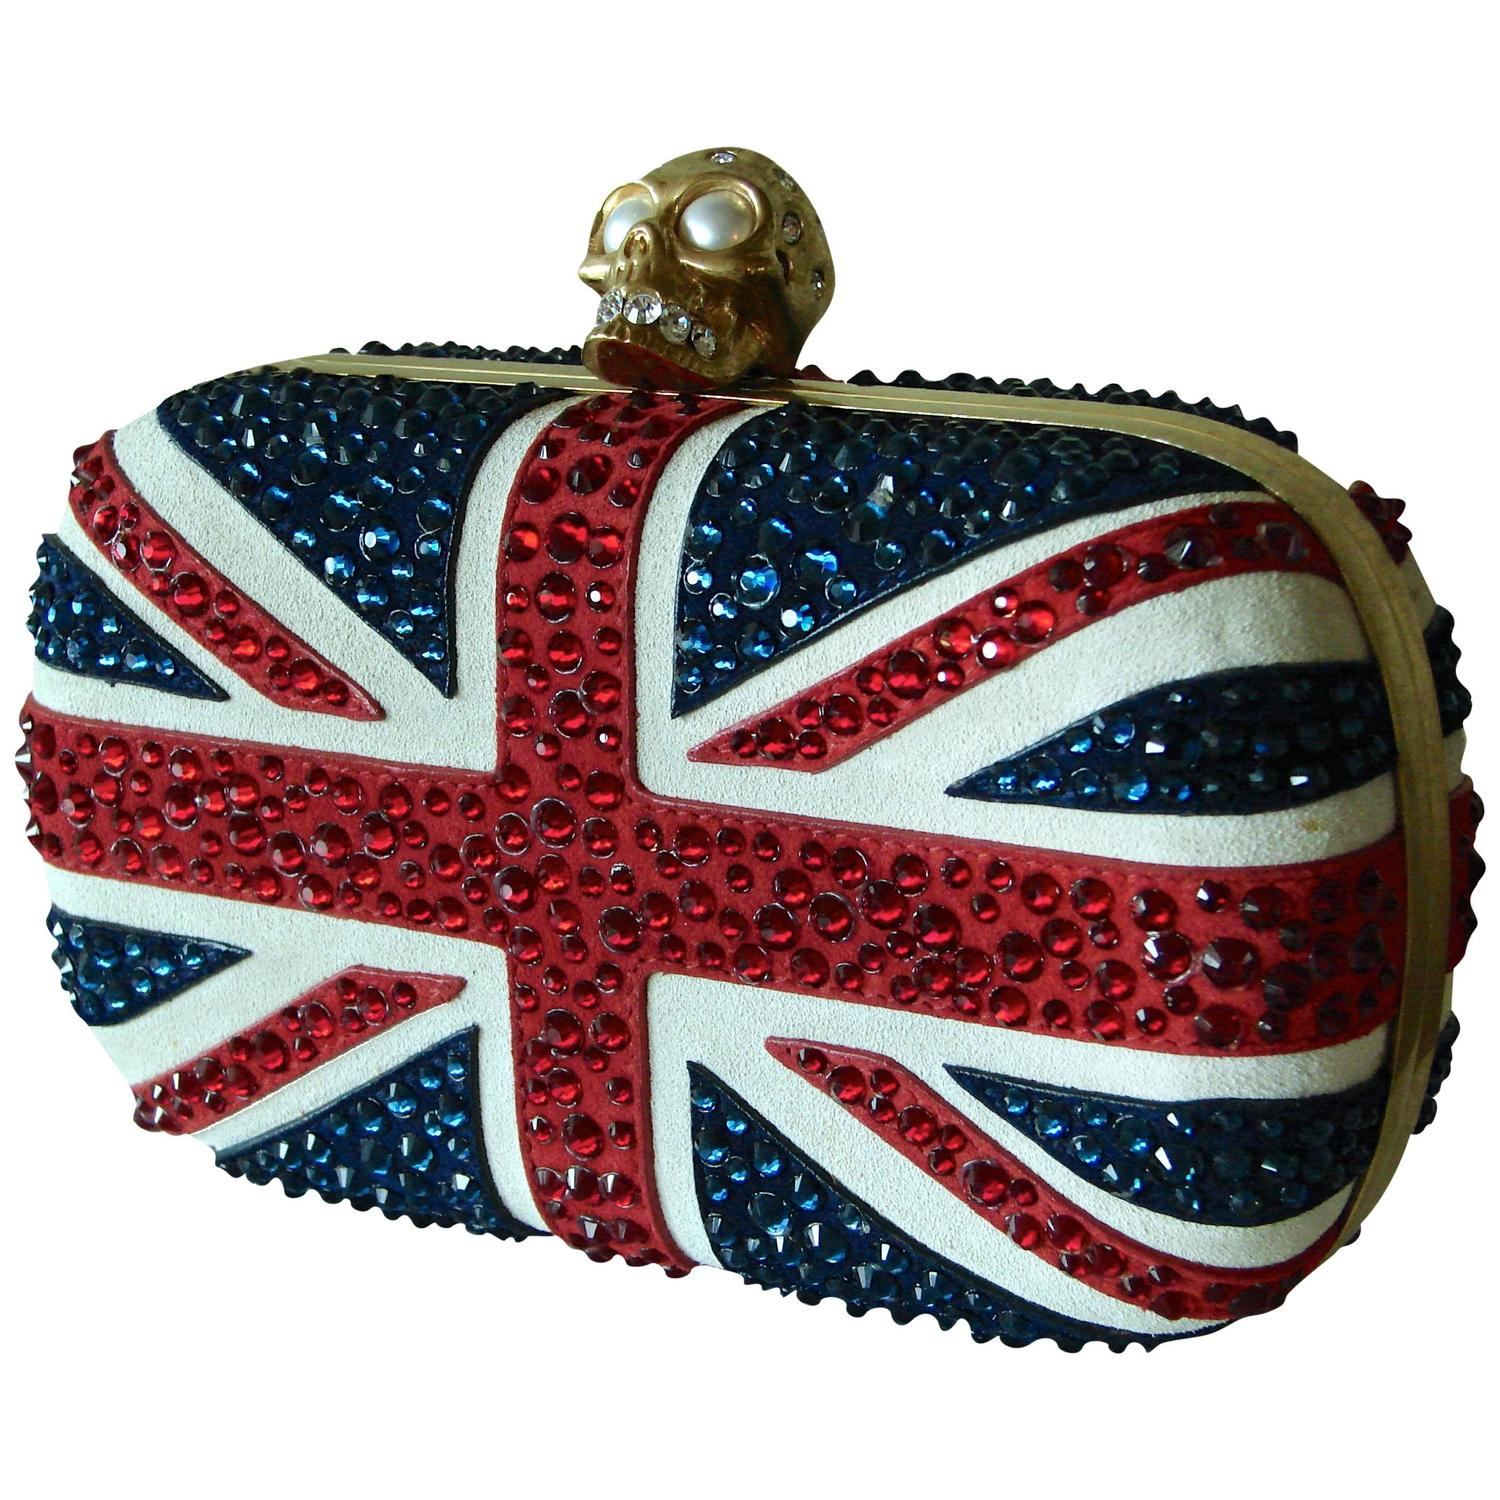 alexander mcqueen britannia union jack crystal box clutch dust bag 2015 for sale at 1stdibs. Black Bedroom Furniture Sets. Home Design Ideas